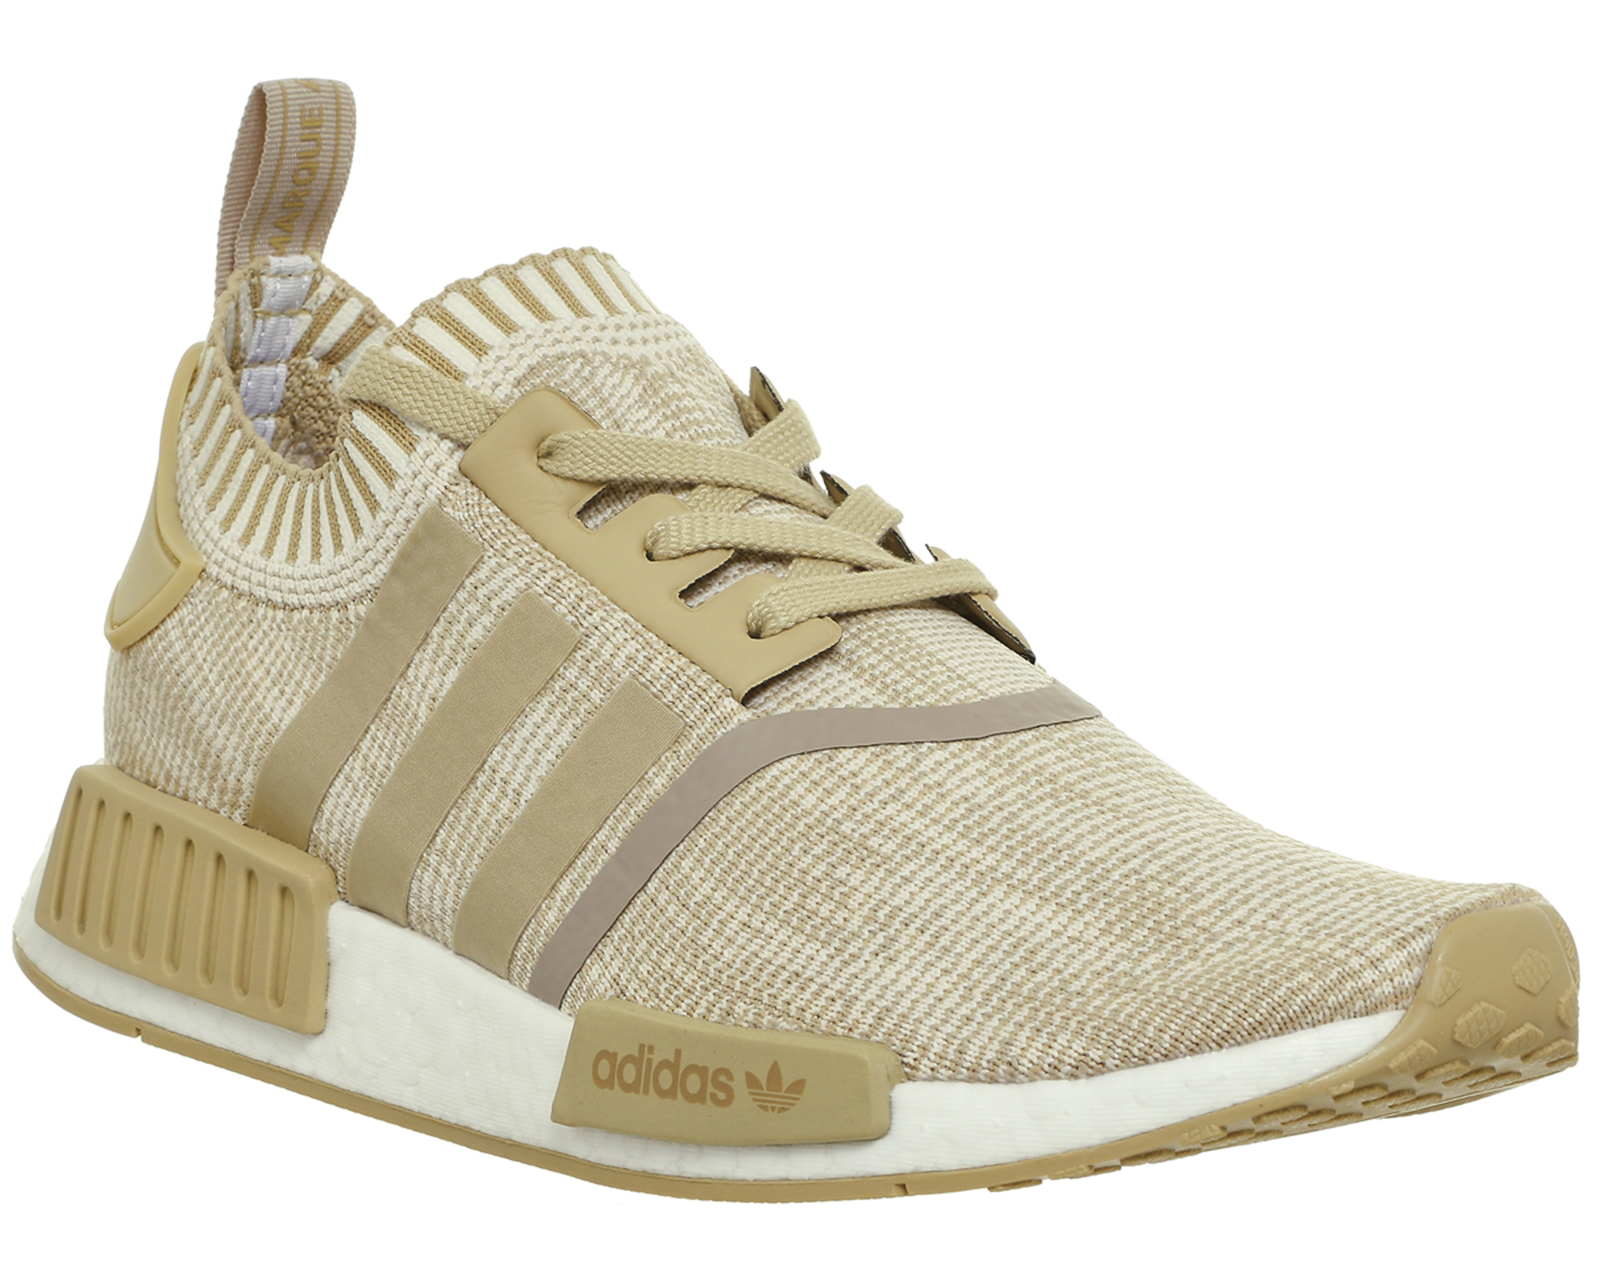 4b757b3a917 Sentinel Adidas Nmd R1 Prime Knit LINEN KHAKI OFF WHITE Trainers Shoes